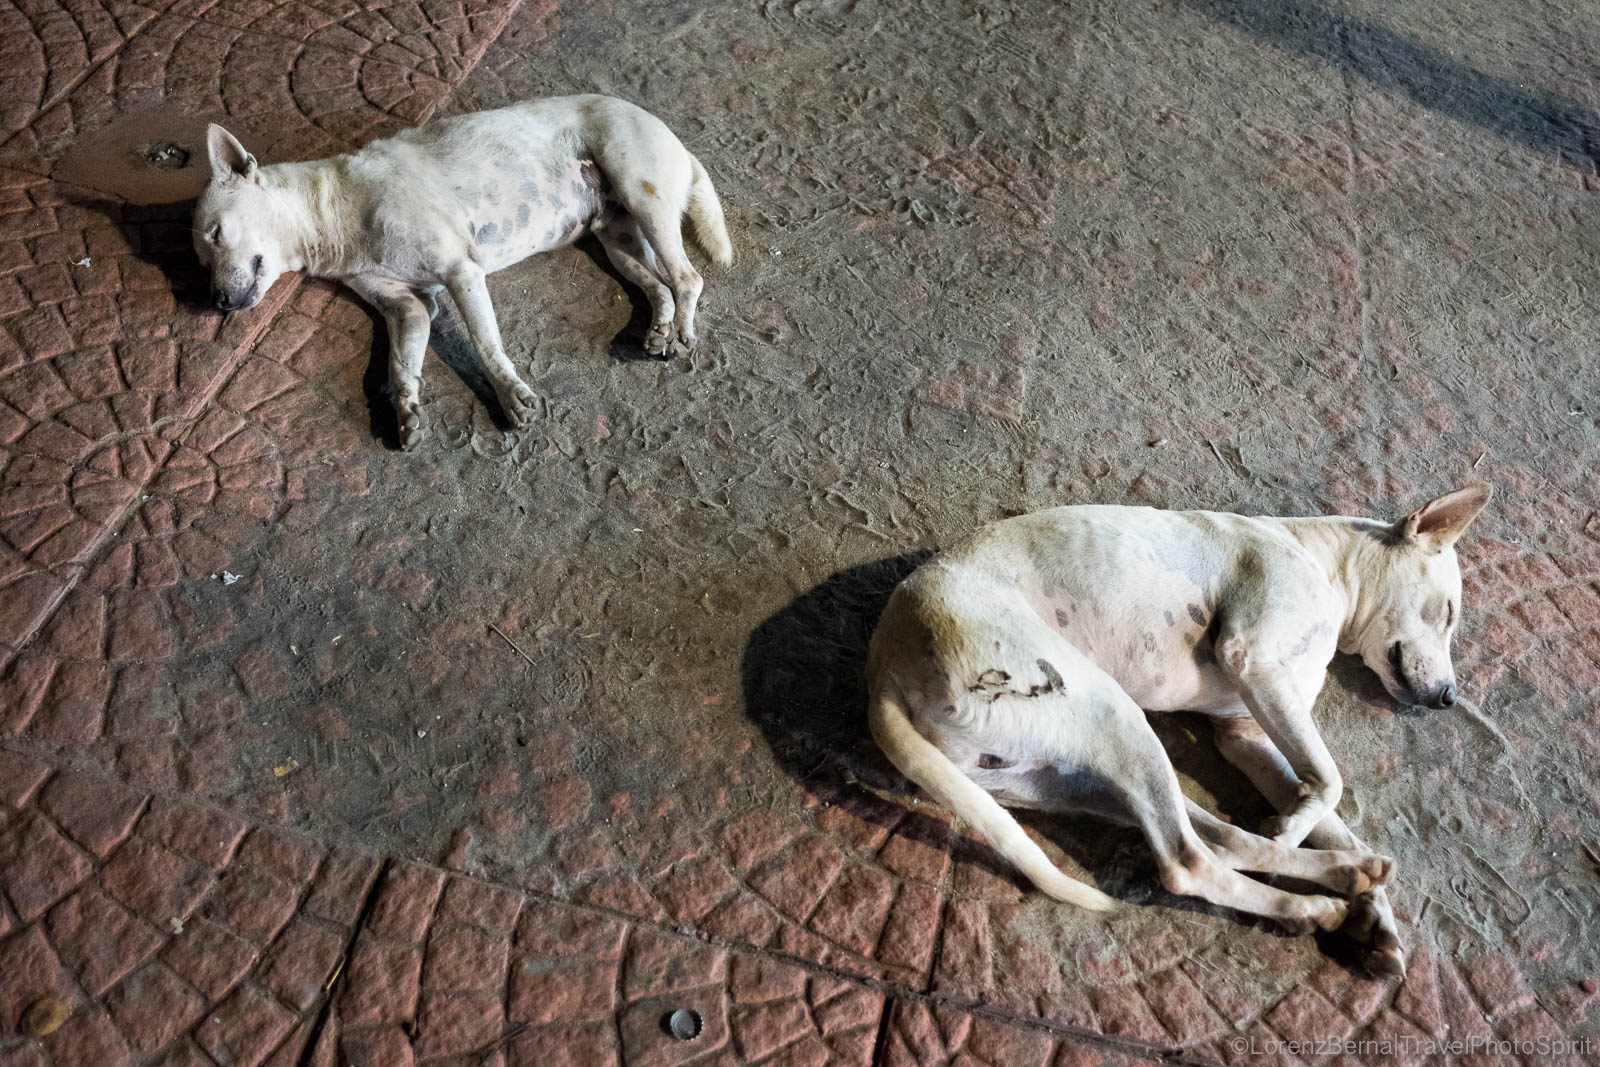 Dogs sleeping in the middle of the walkway, India